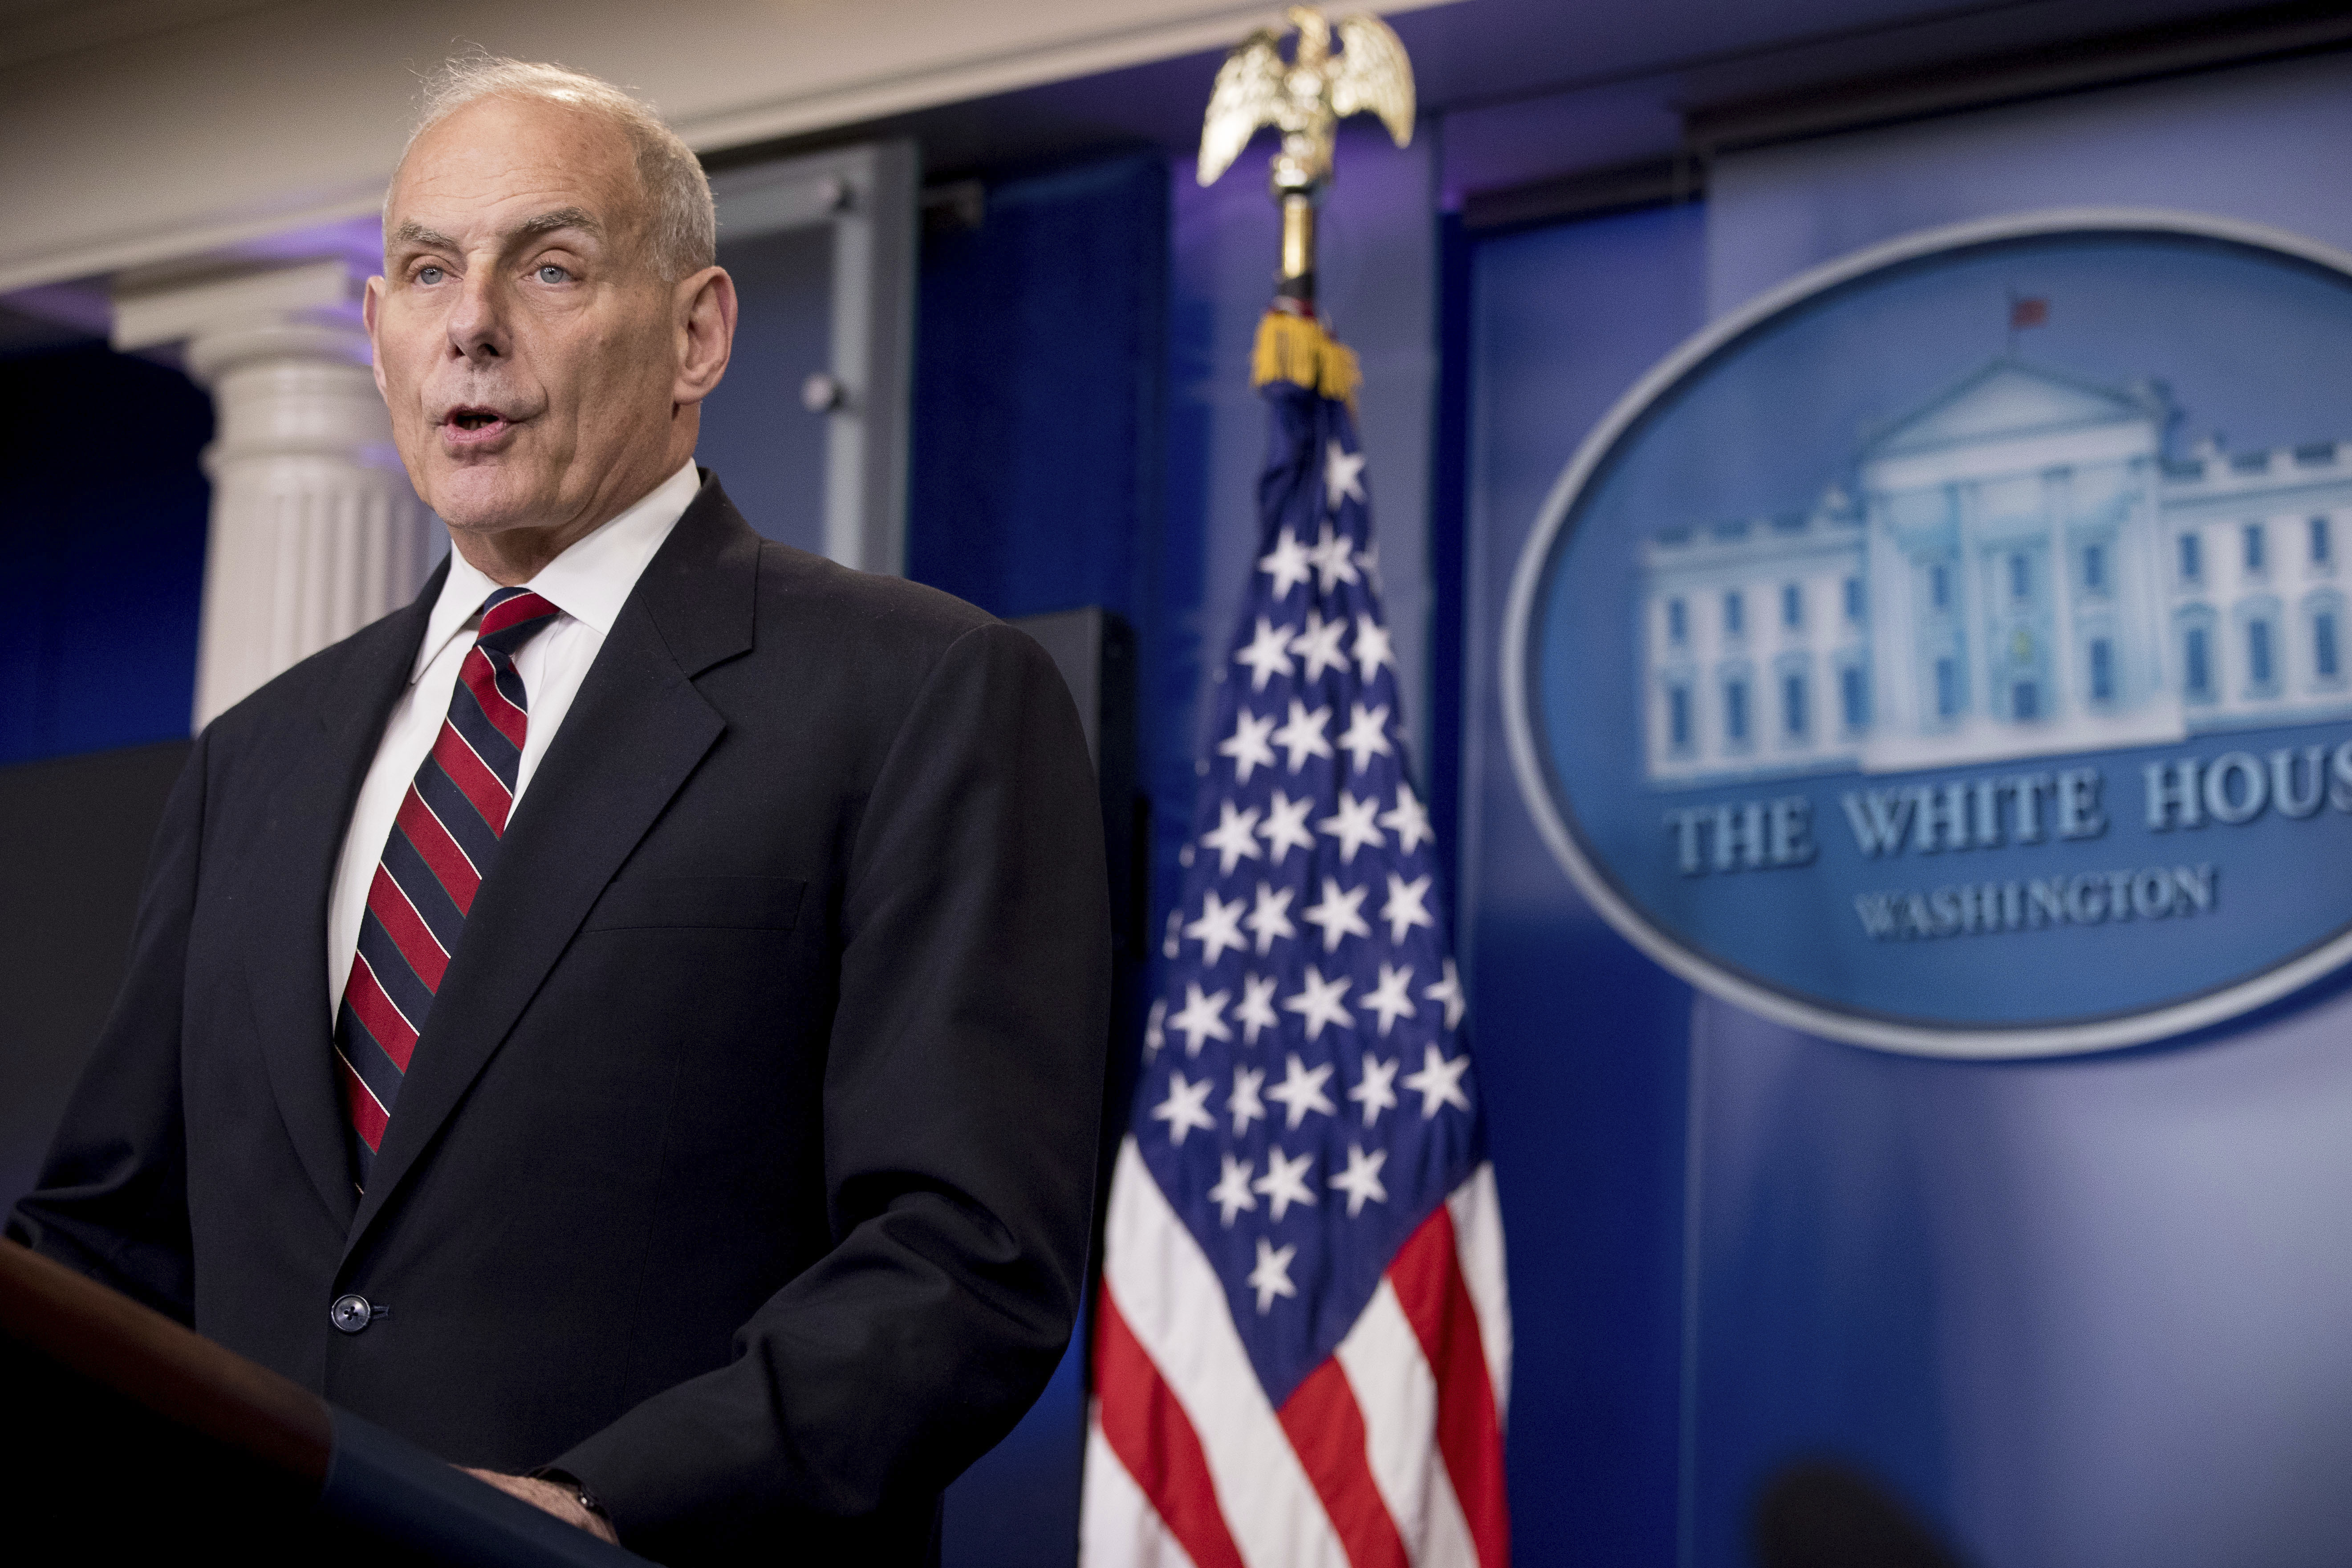 FILE - In this May 2, 2017 file photo, Homeland Security Secretary John Kelly speaks at the White House in Washington. The Trump administration is taking the unusual step of hunting for evidence of crimes committed by Haitian immigrants as it decides whether to allow them to continue participating in a humanitarian program that has shielded tens of thousands from deportation since an earthquake destroyed much of their country .(AP Photo/Andrew Harnik, File)